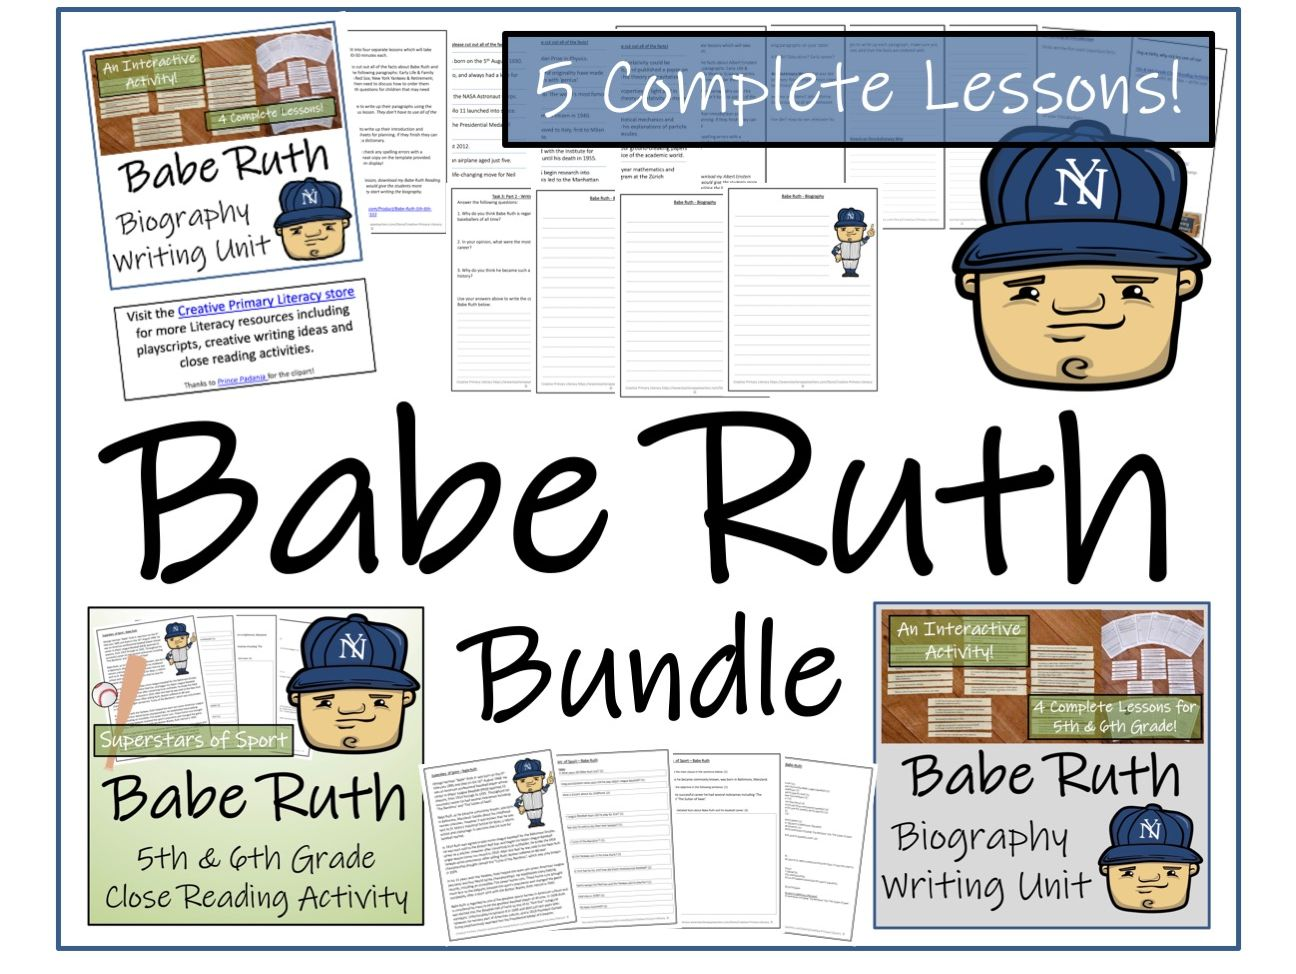 UKS2 History - Bundle of Activities about Babe Ruth